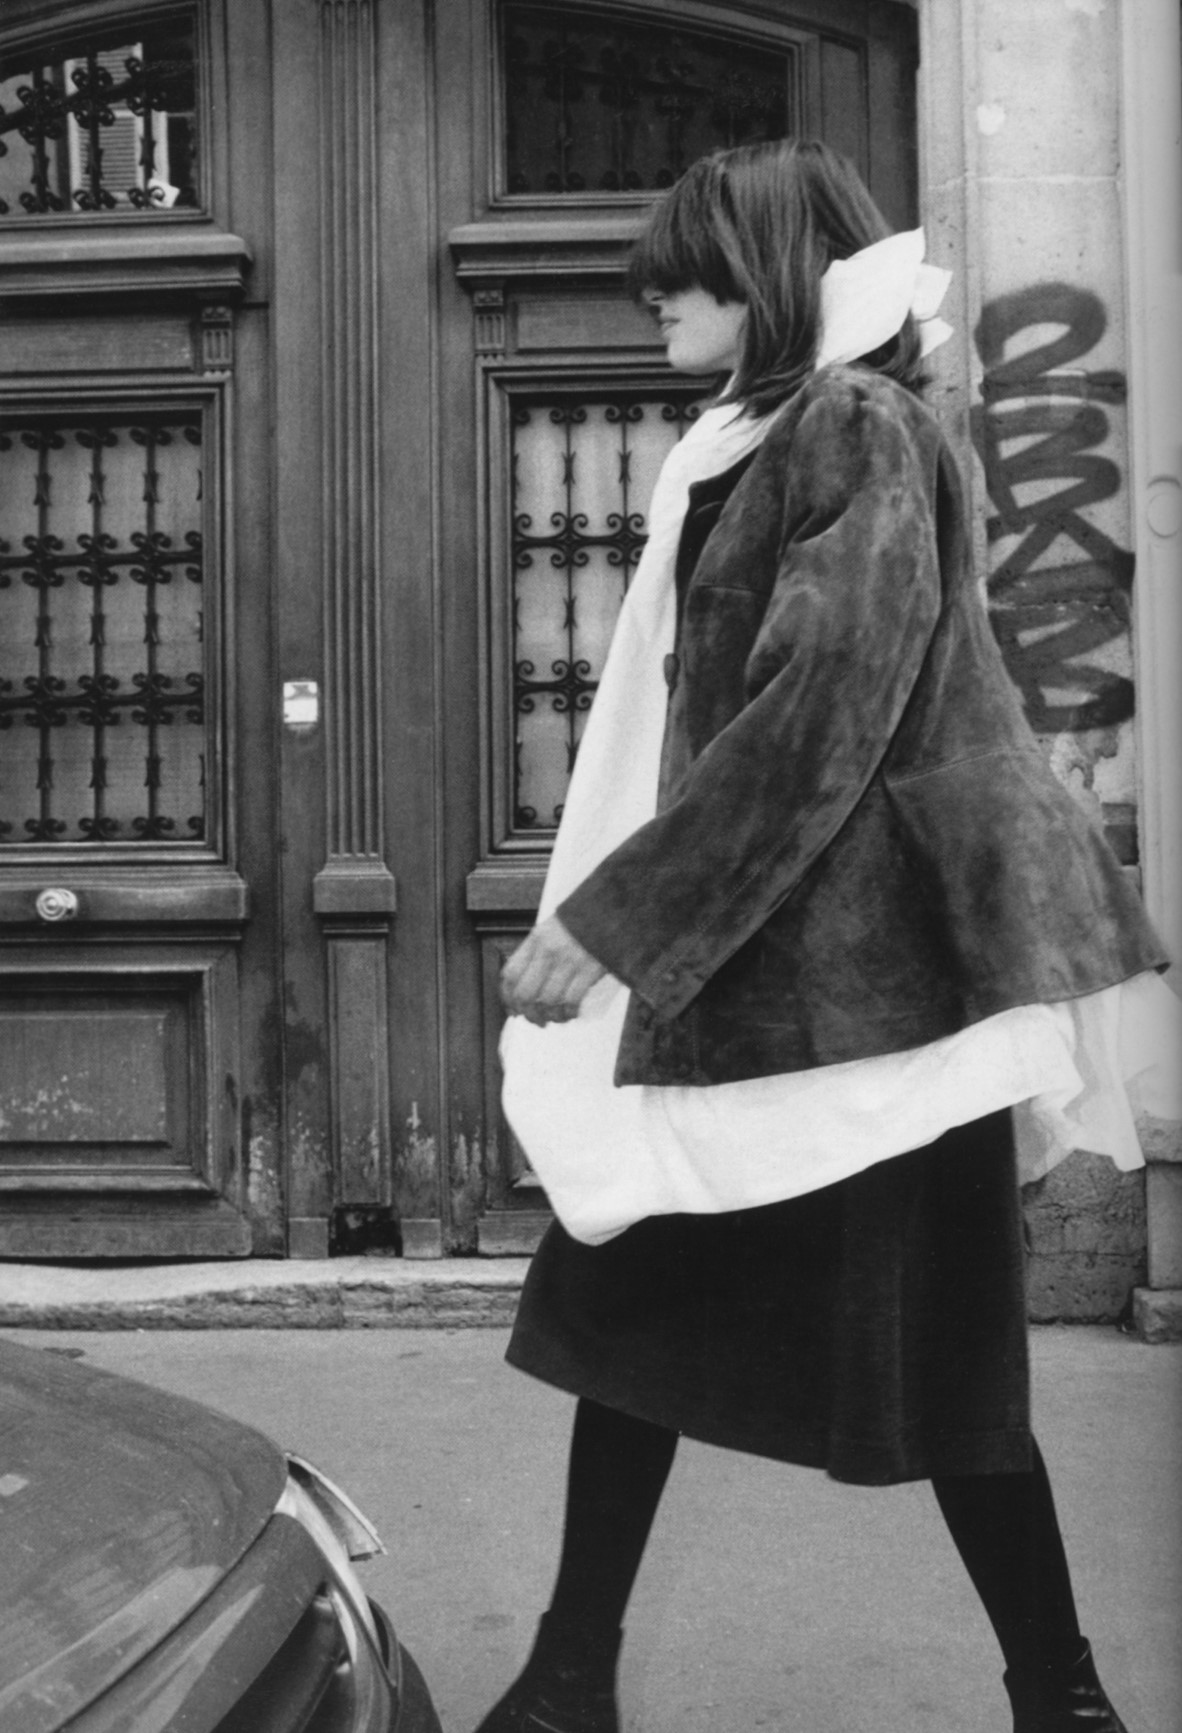 MAISON MARTIN MARGIELA | OVERSIZED COLLECTION | FALL/WINTER 2000/01 | PHOTOGRAPHY RONALD STOOPS